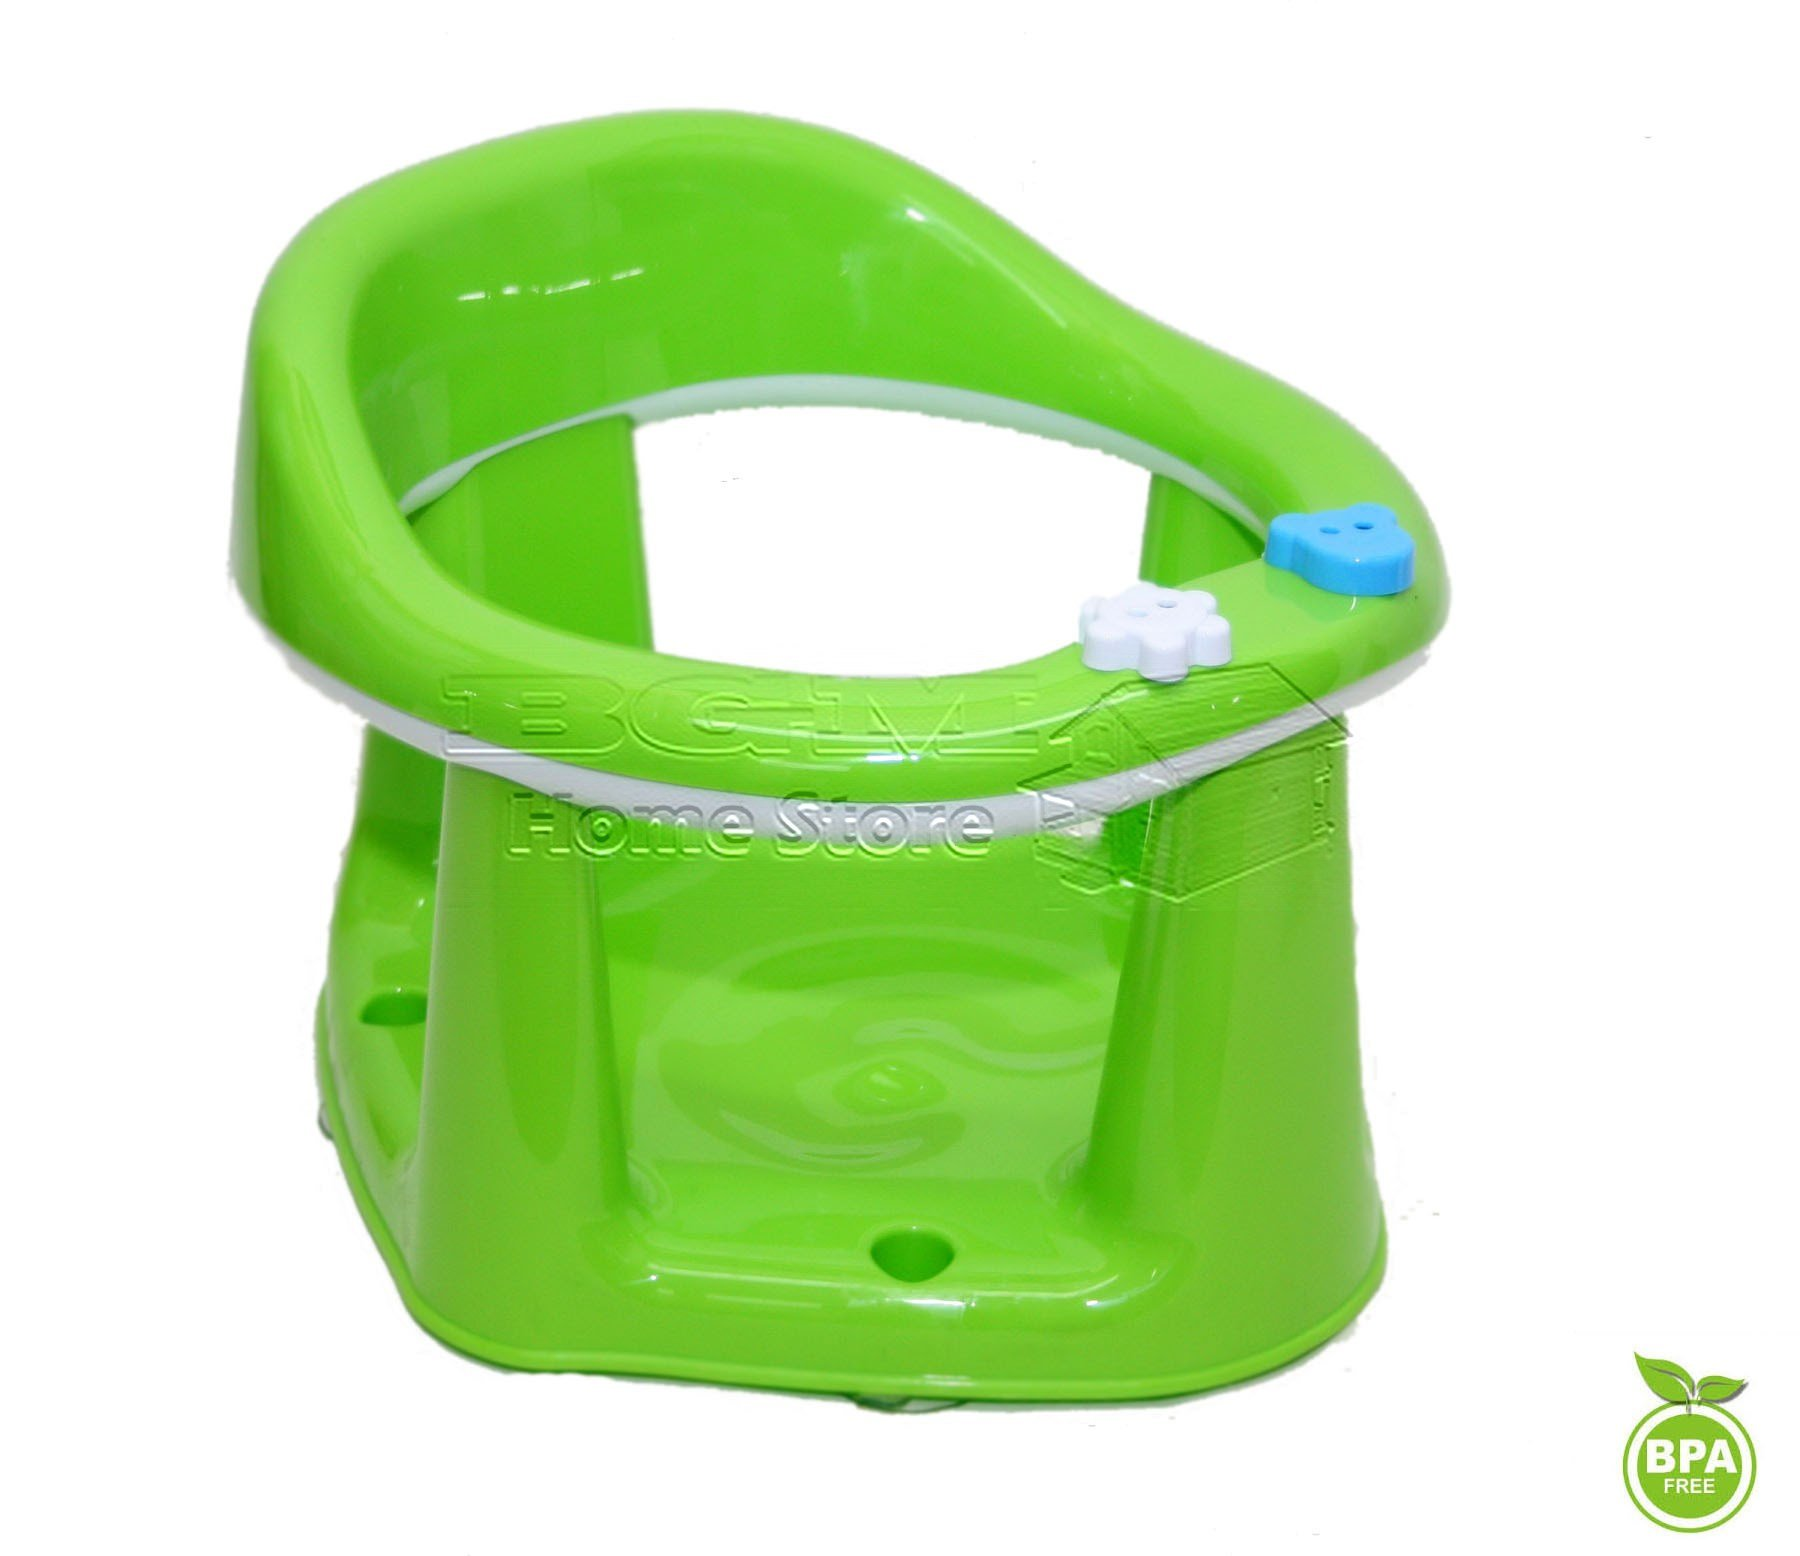 Baby Toddler Child Bath Support Seat Safety Bathing Safe Dinning Play 3 In 1 MWR (GREEN)